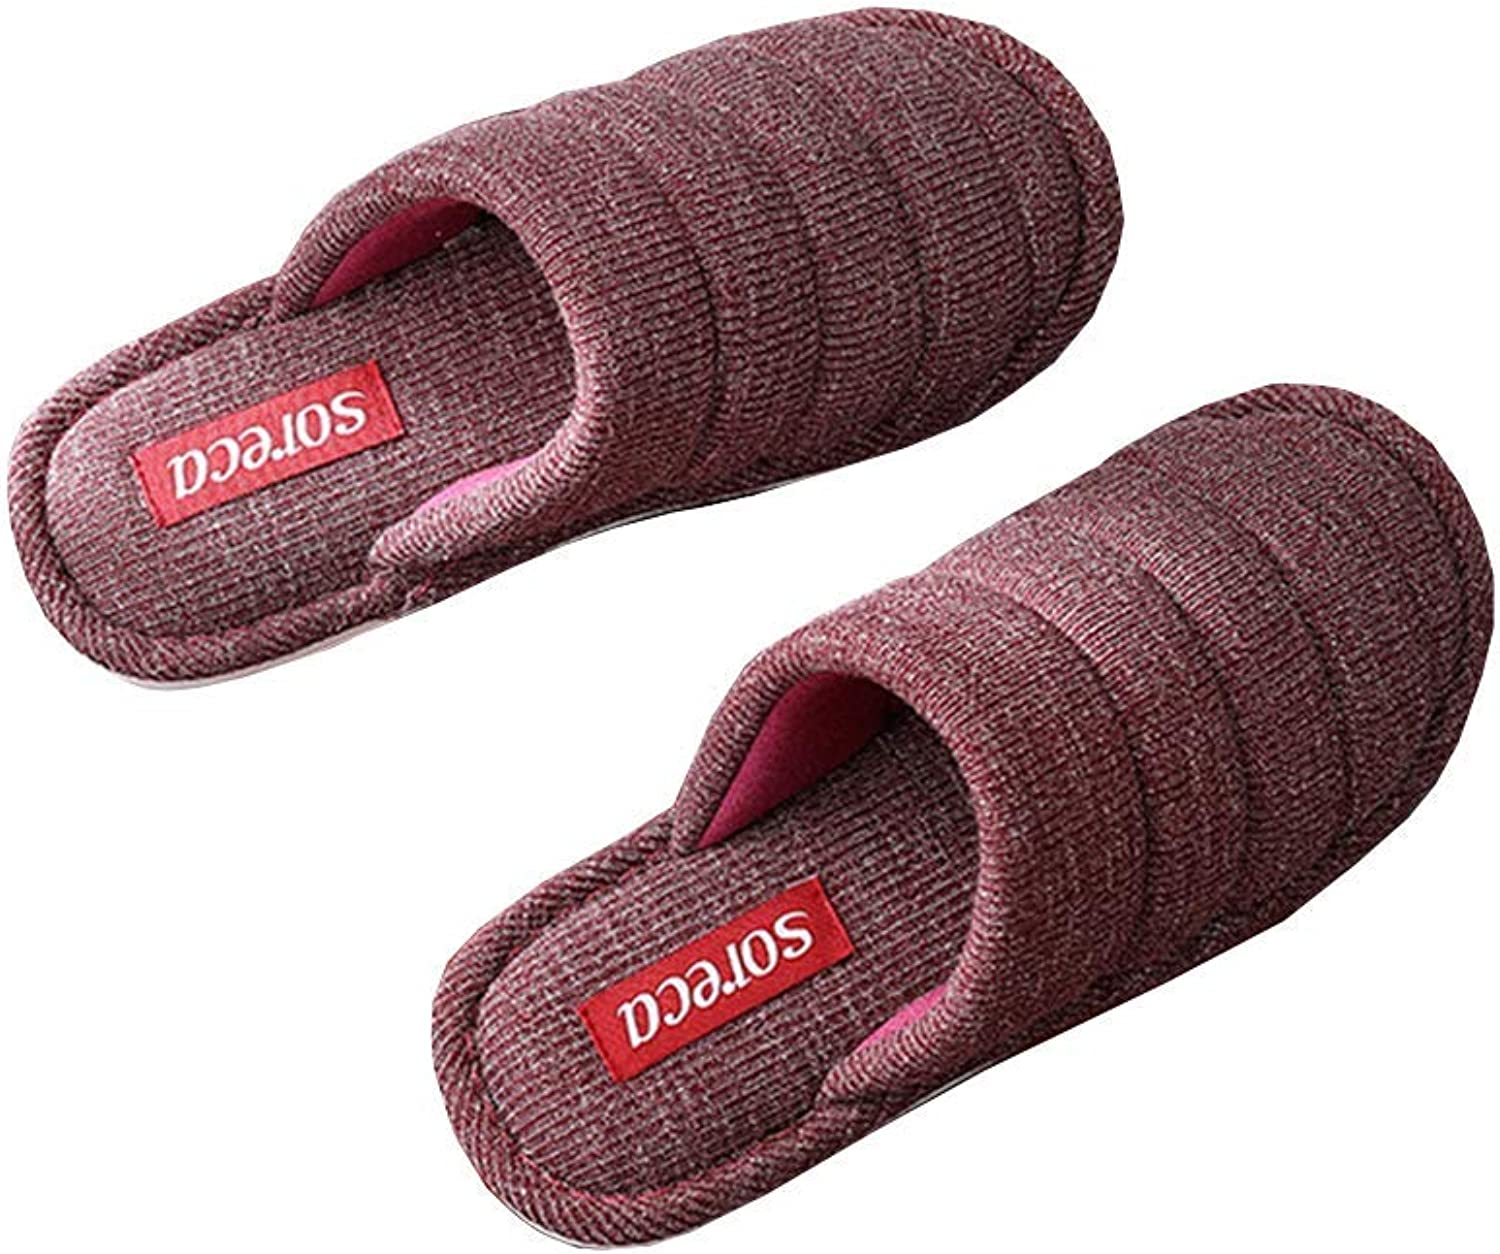 Winter Cotton Slippers Warm Memory Foam Cozy Soft Solid color Women Flat Home Indoor Outdoor Slipper shoes